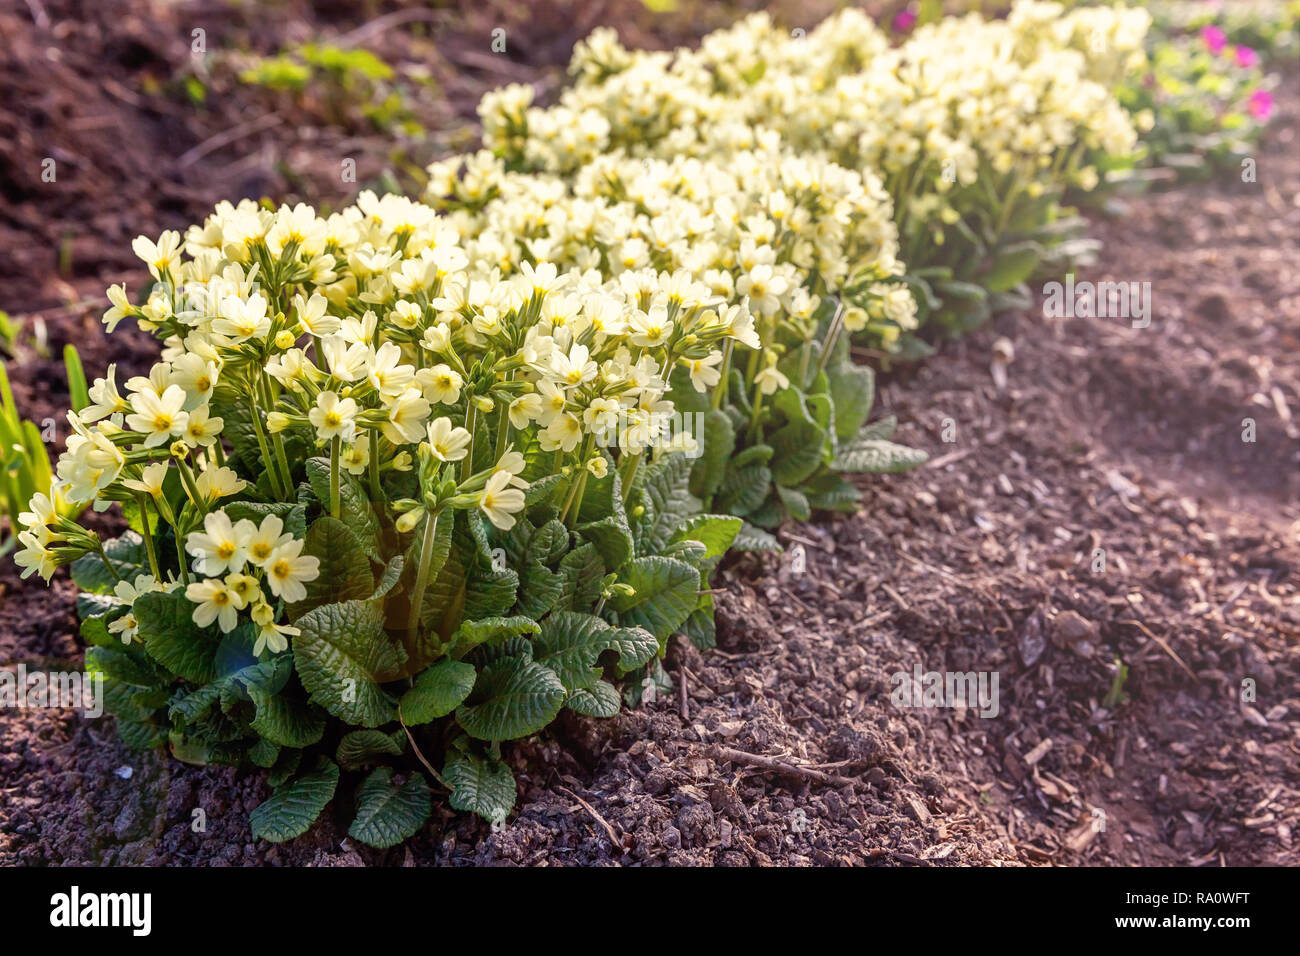 Primrose - Primula vulgaris Small plant with yellow flowers among rocks leaf litter in the spring or summer garden Stock Photo